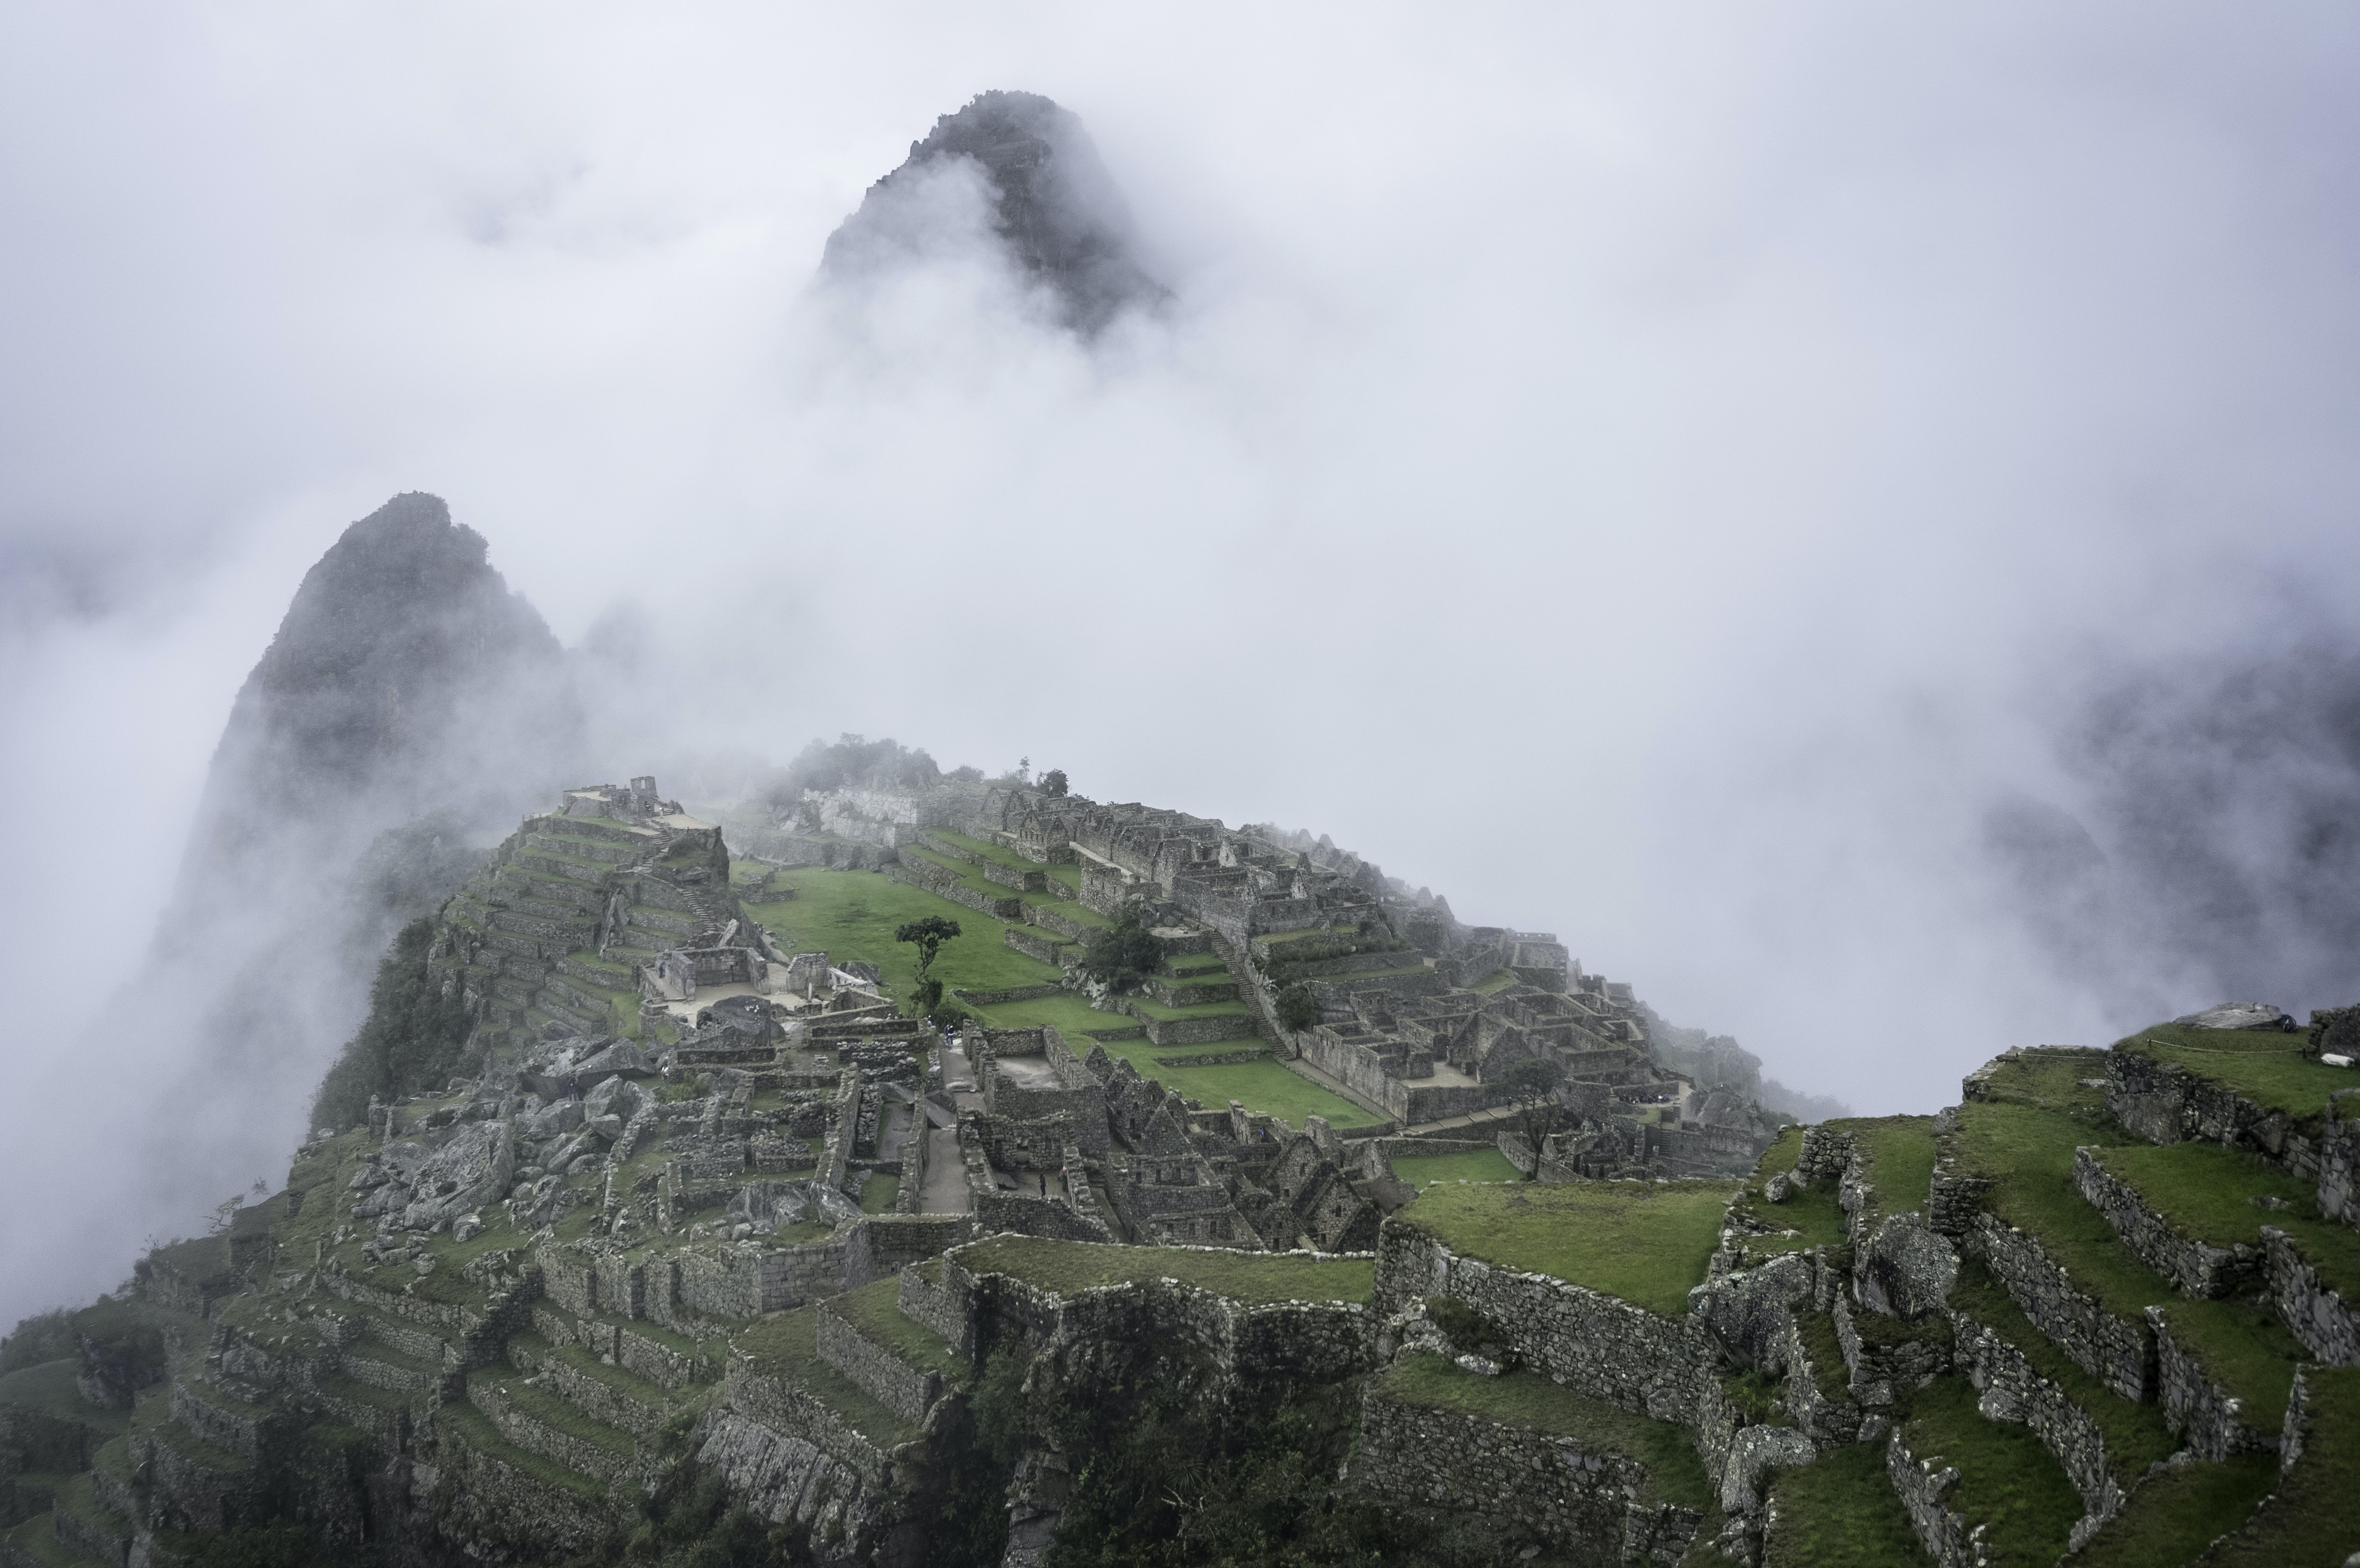 Fog setting over the Machu Picchu ruins on a cool day